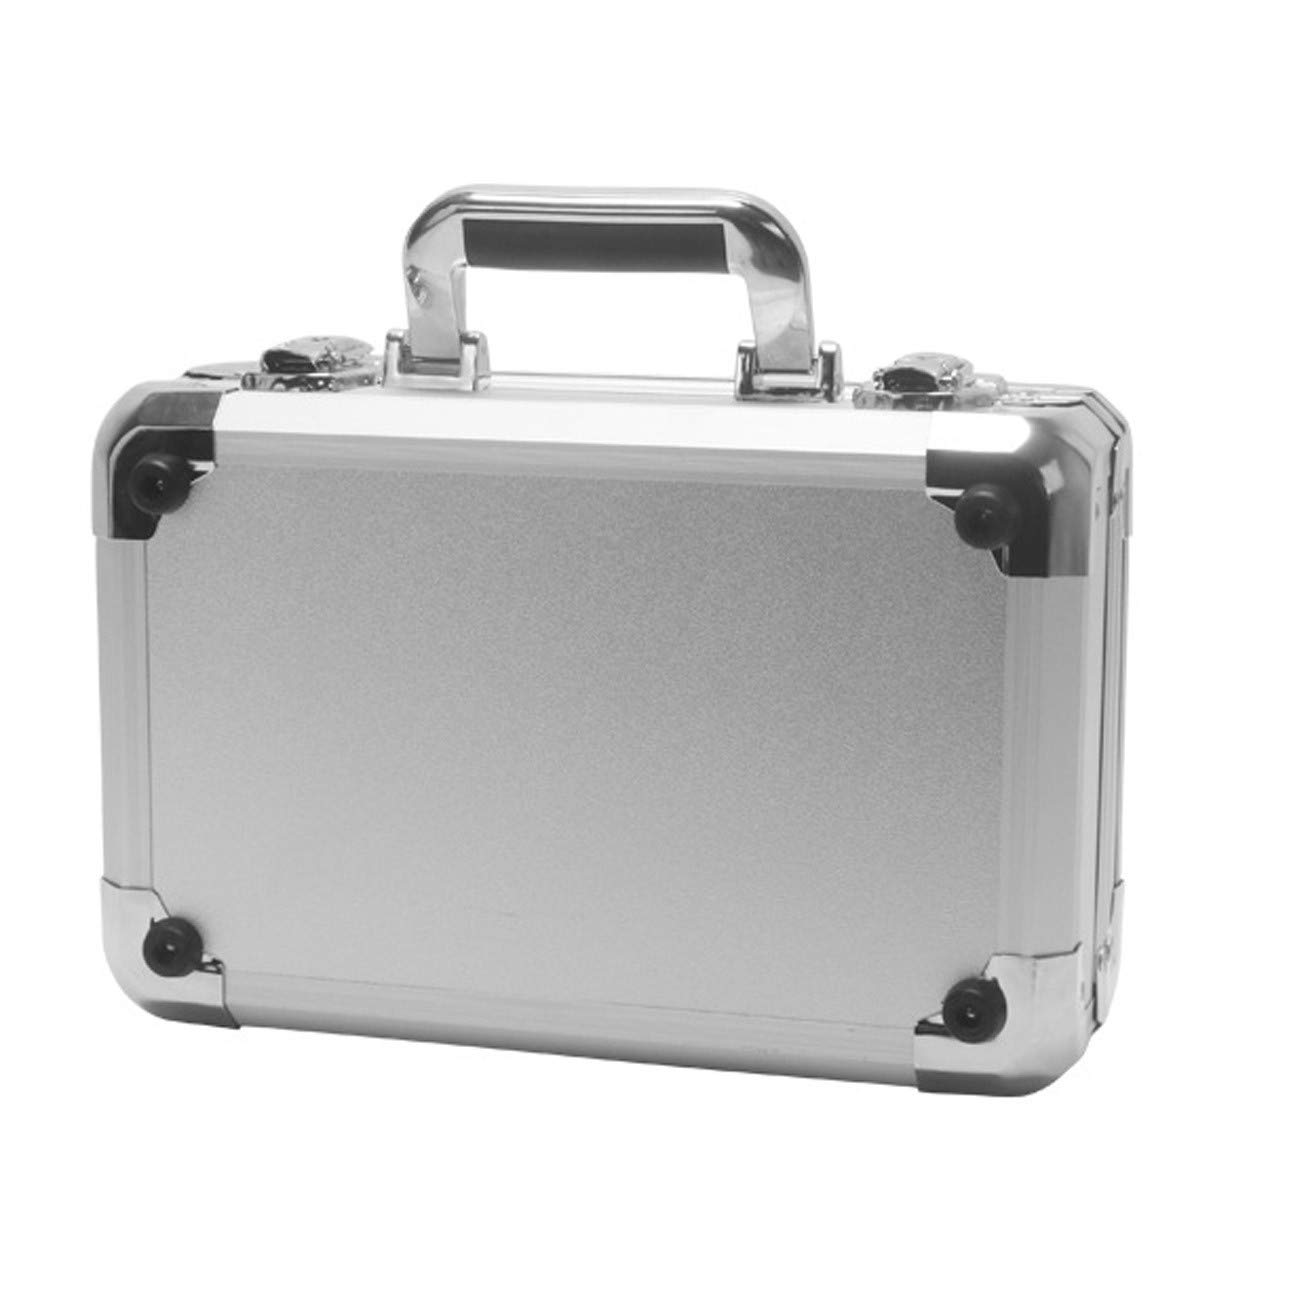 DDLmax Carrying Case Aluminum Hard Travel Protect Case for SJRC F11 by DDLmax (Image #6)